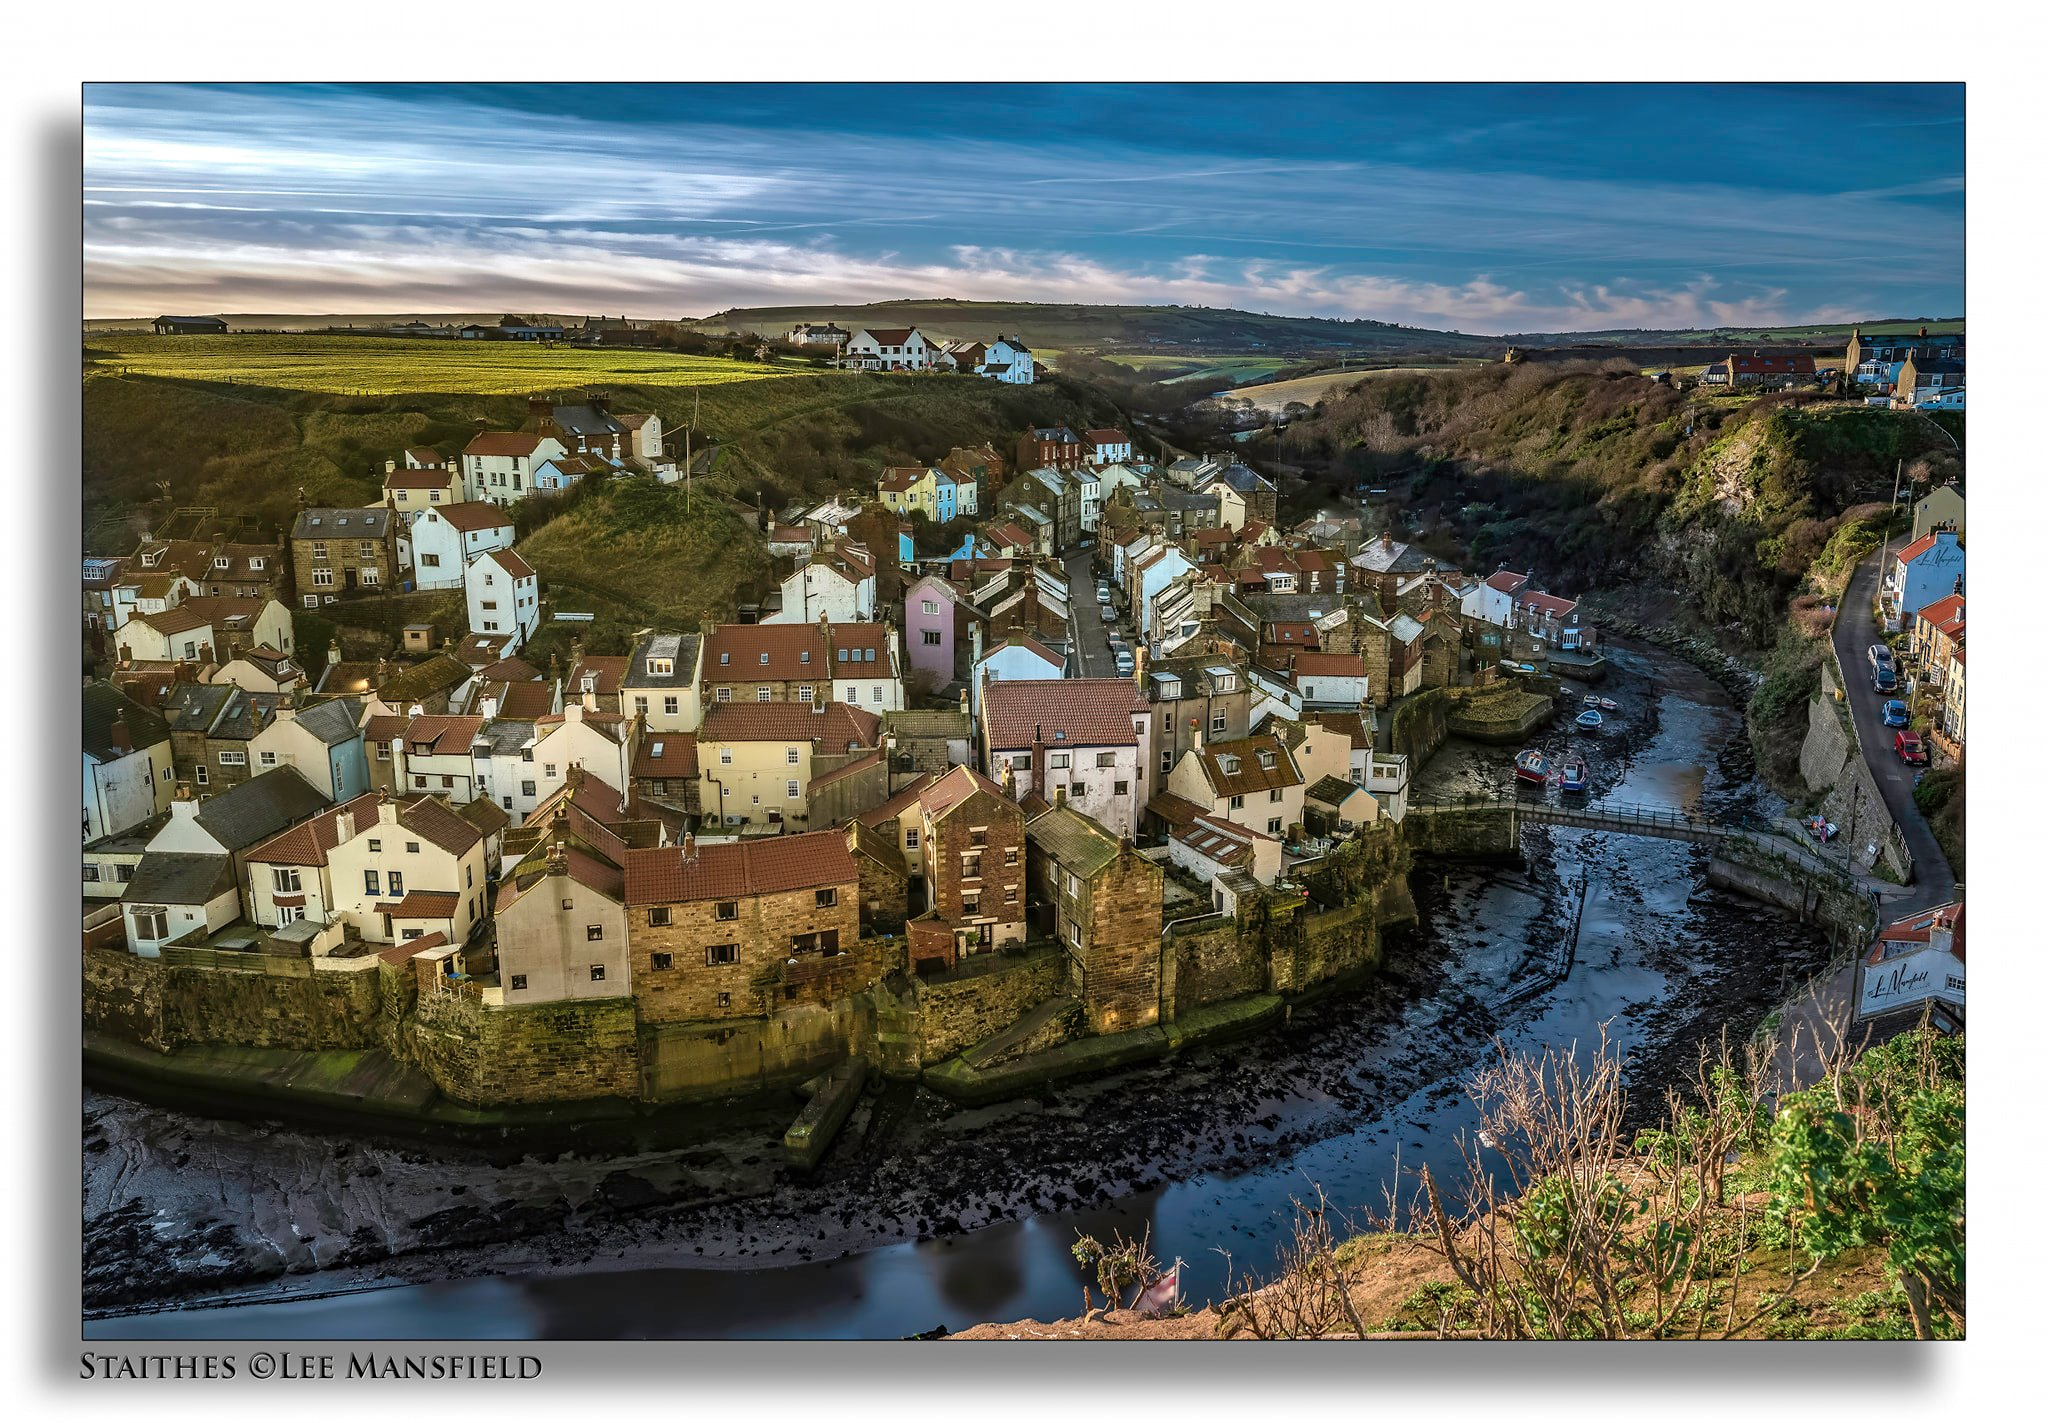 Staithes, viewed from Cowbar Nab